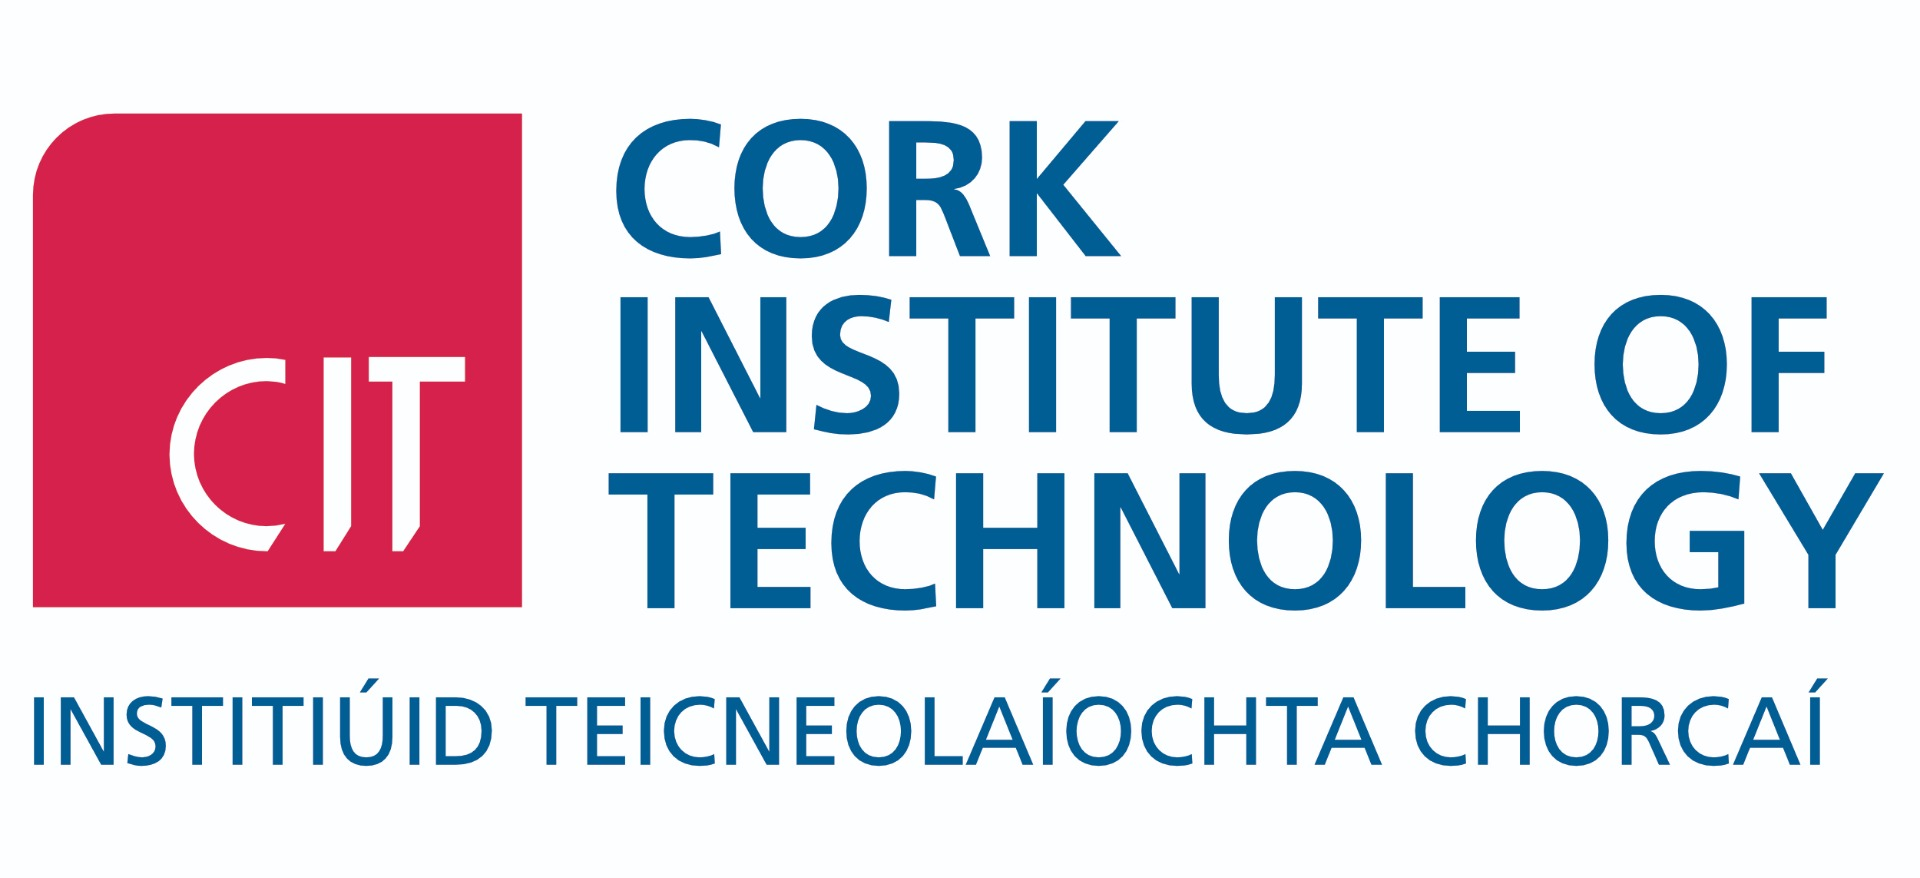 CIT:Cork Institute of Technology